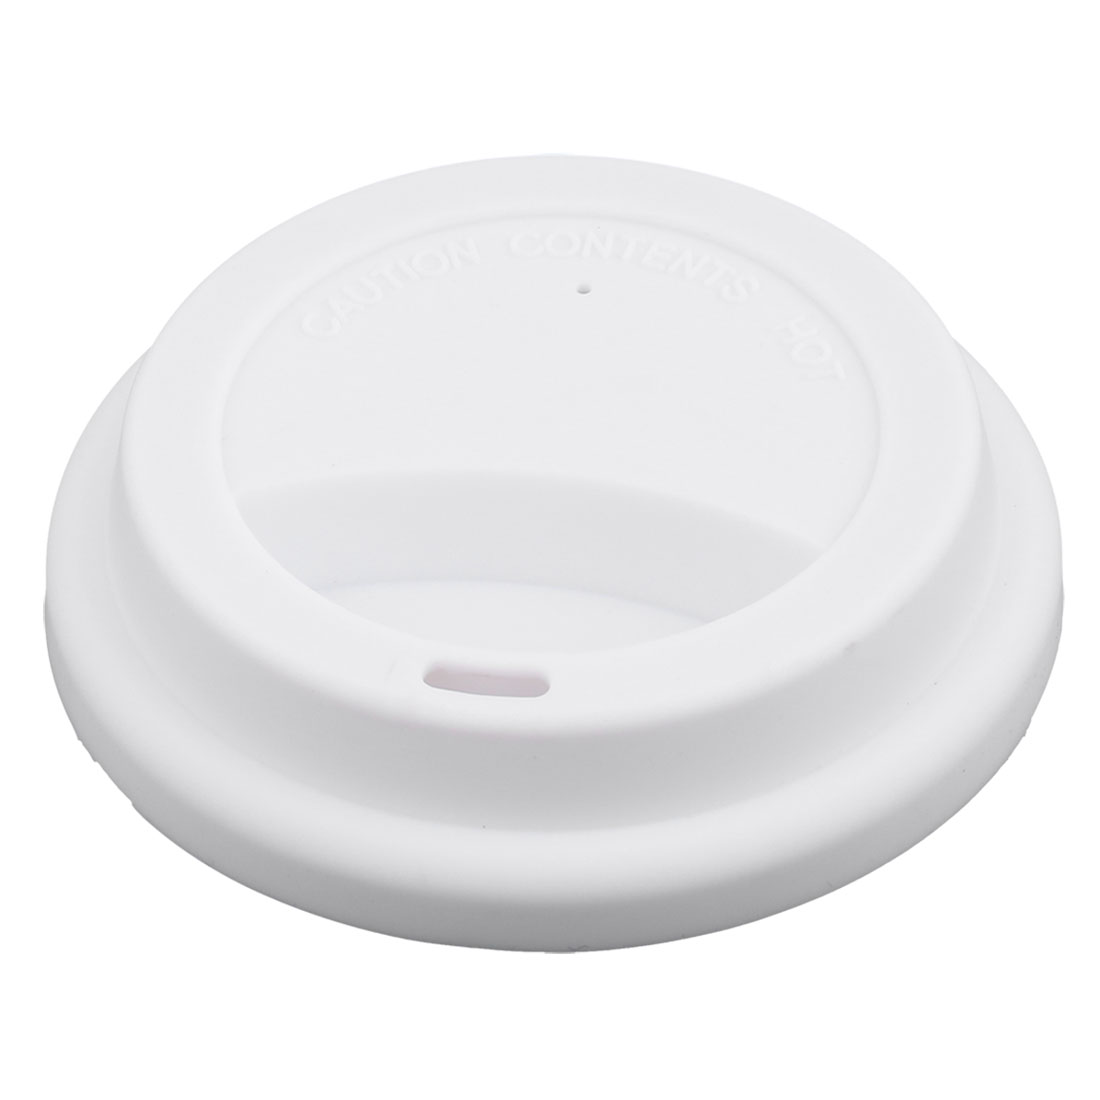 7bf440c888f Family Silicone Round Shaped Resuable Sealed Mug Lid Tea Coffee Cup Cover  White